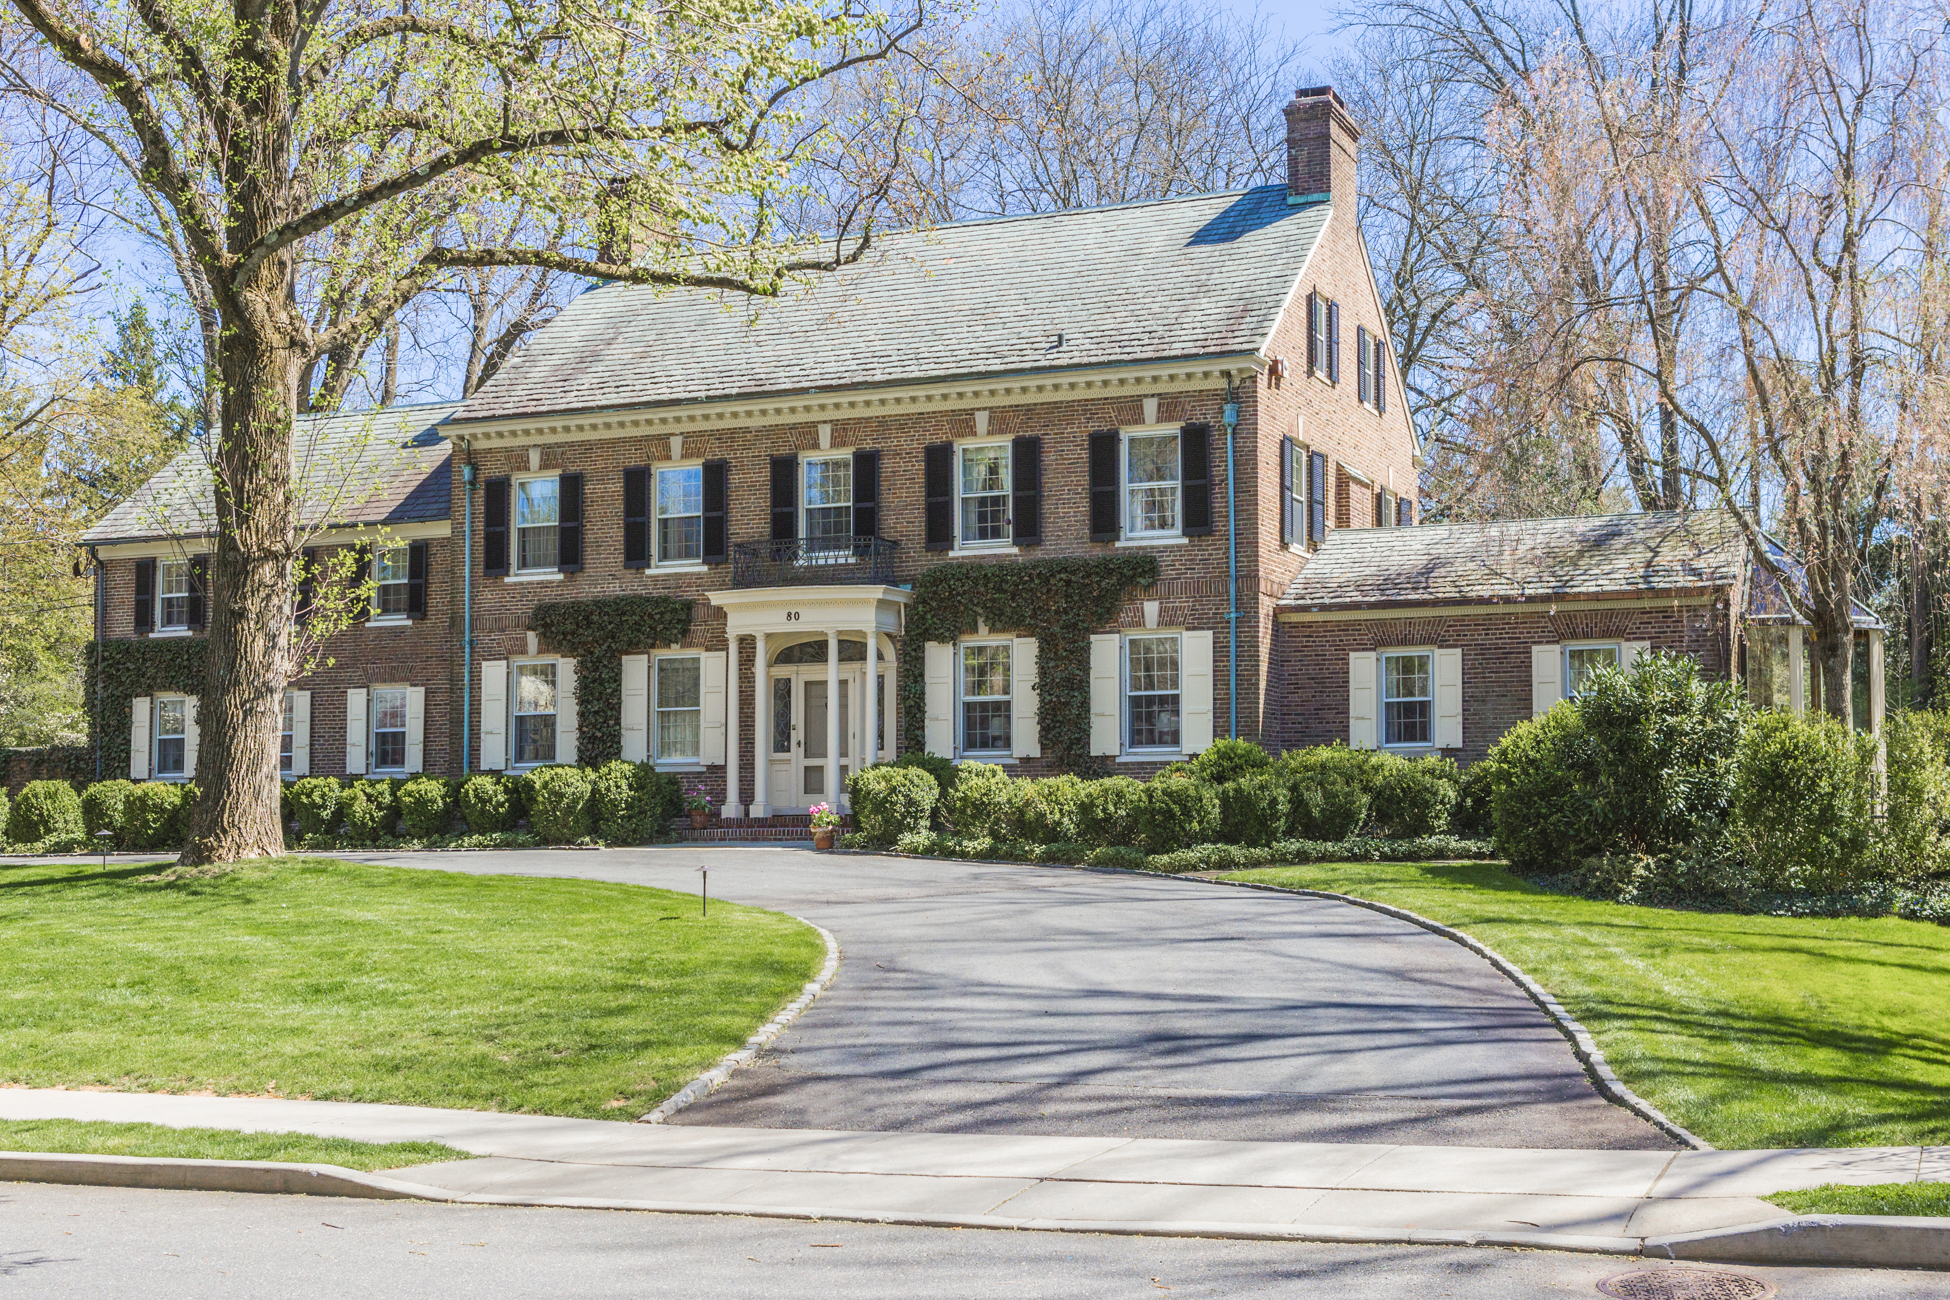 Maison unifamiliale pour l Vente à A Warm and Noble Presence in the Western Section 80 Westcott Road Princeton, New Jersey, 08540 États-Unis